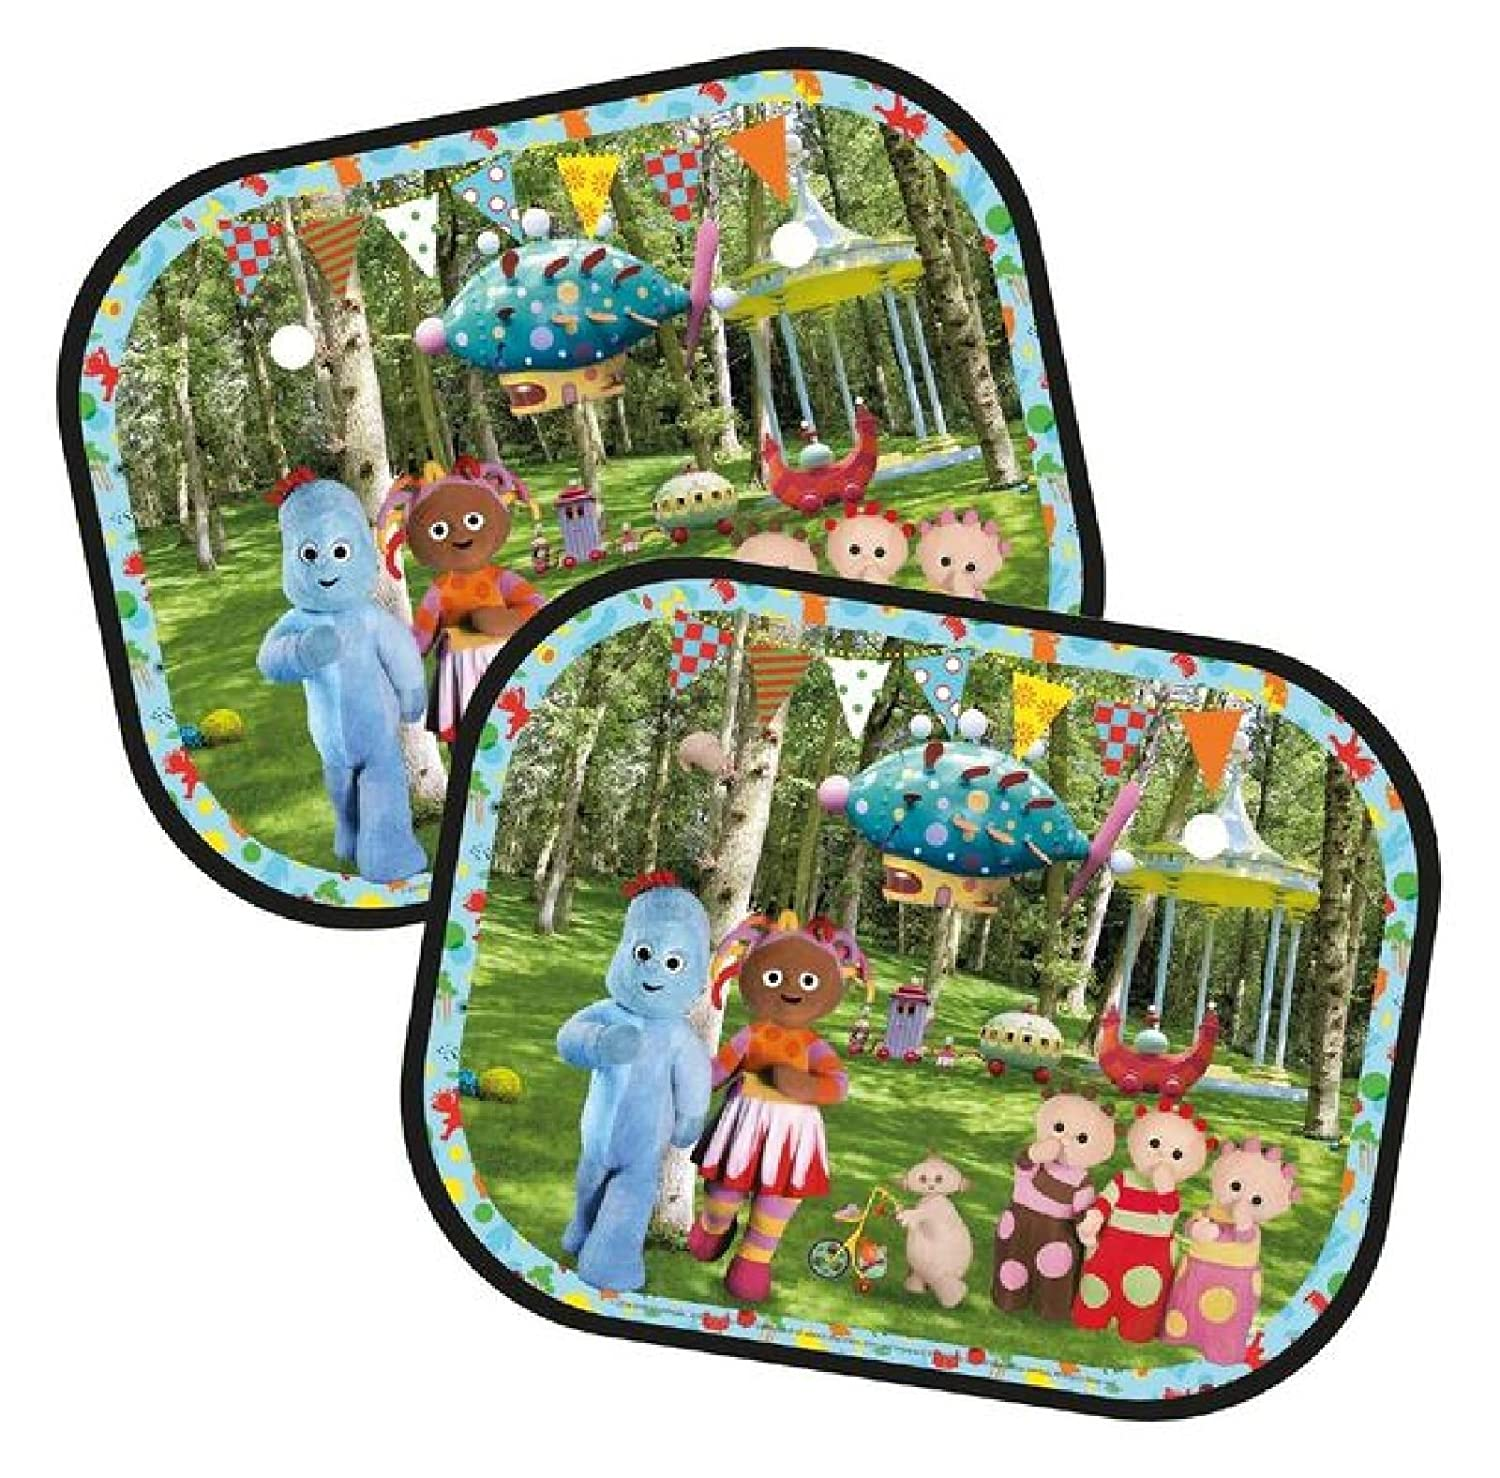 In the Night Garden Window Sun Shades: Set of Two Alligator